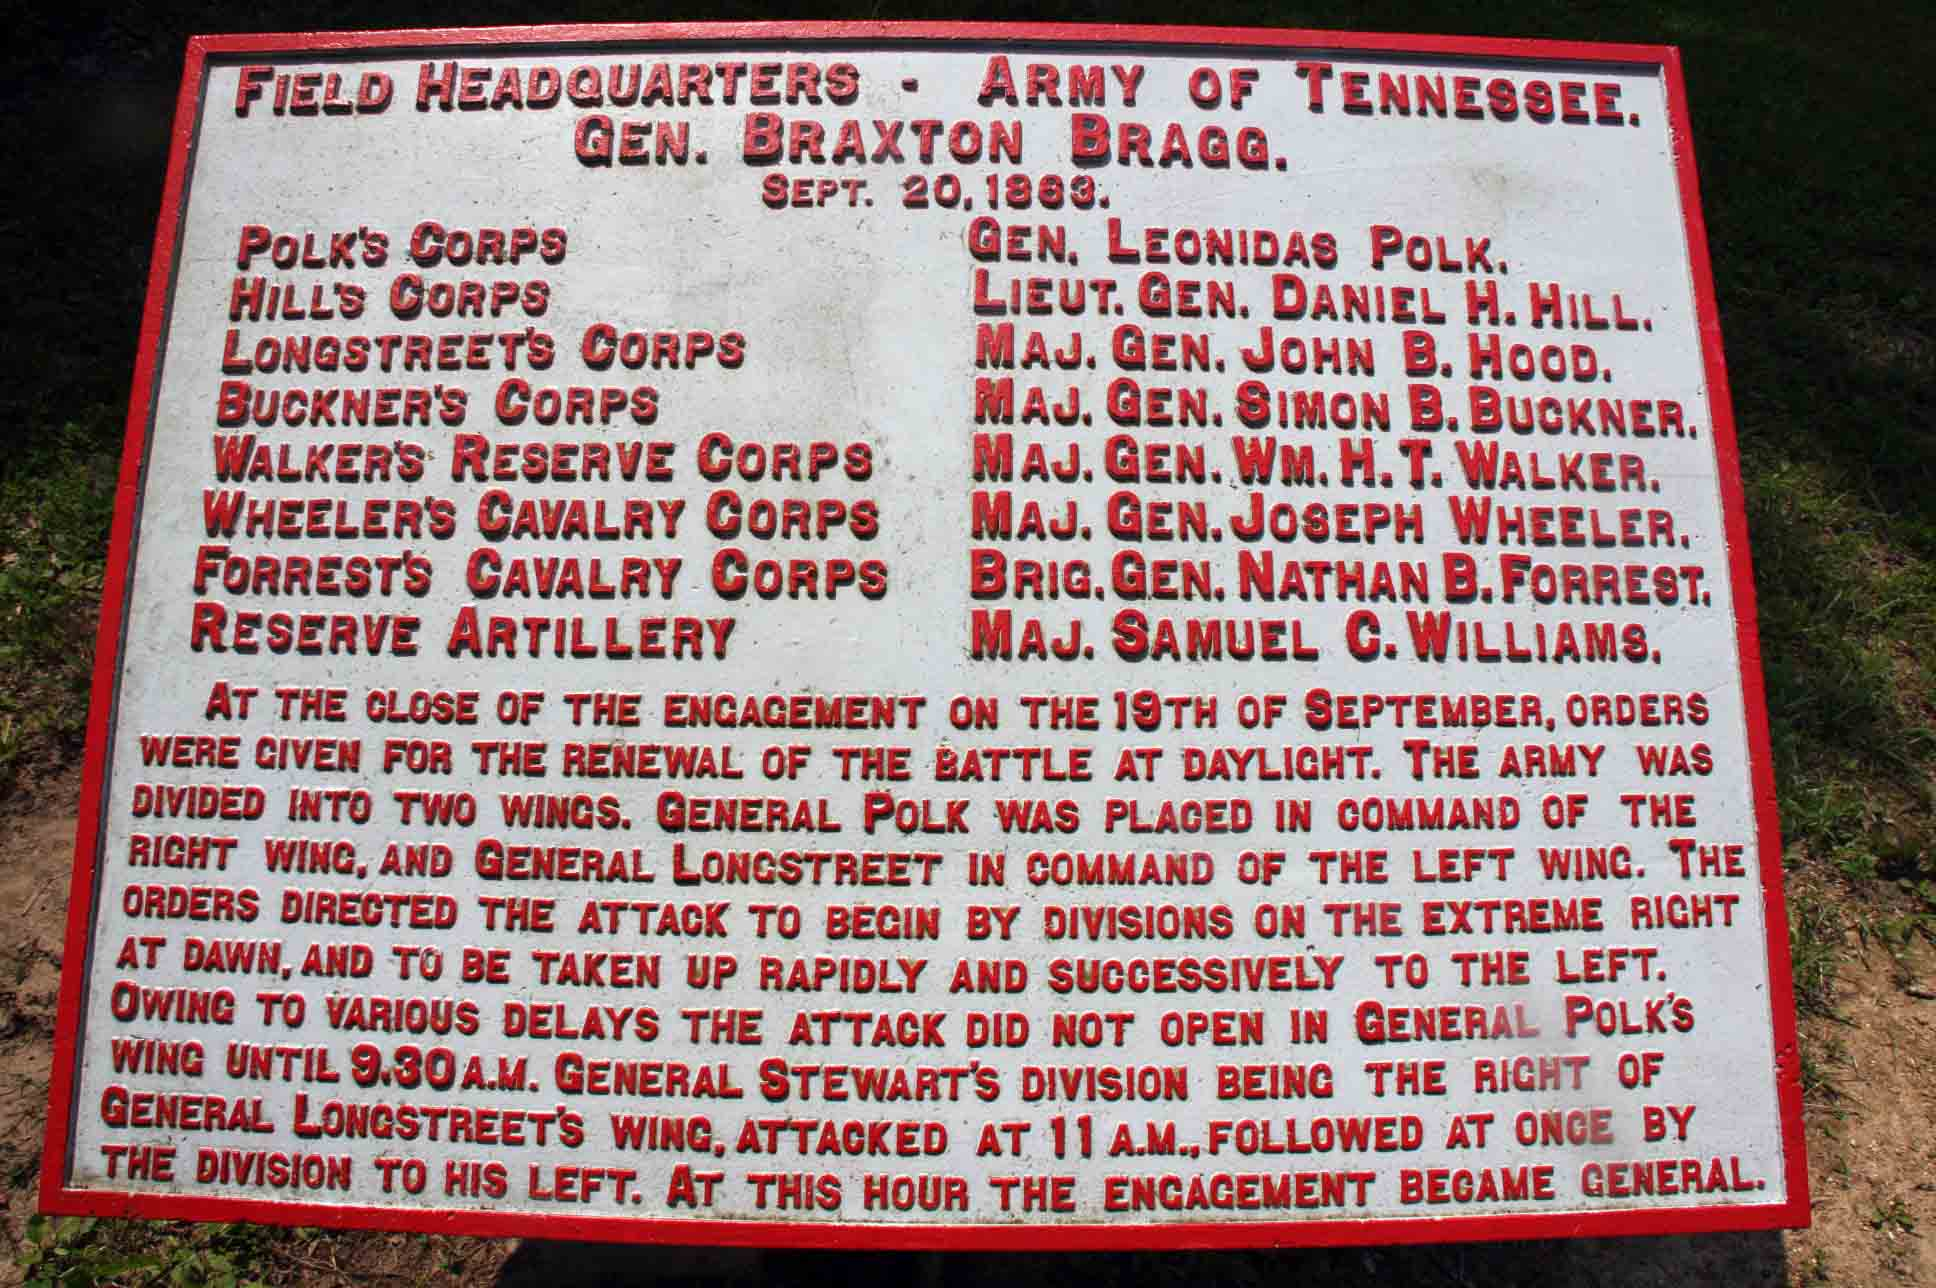 Field Headquarters - Army of Tennessee Tablet, click photo to enlarge.